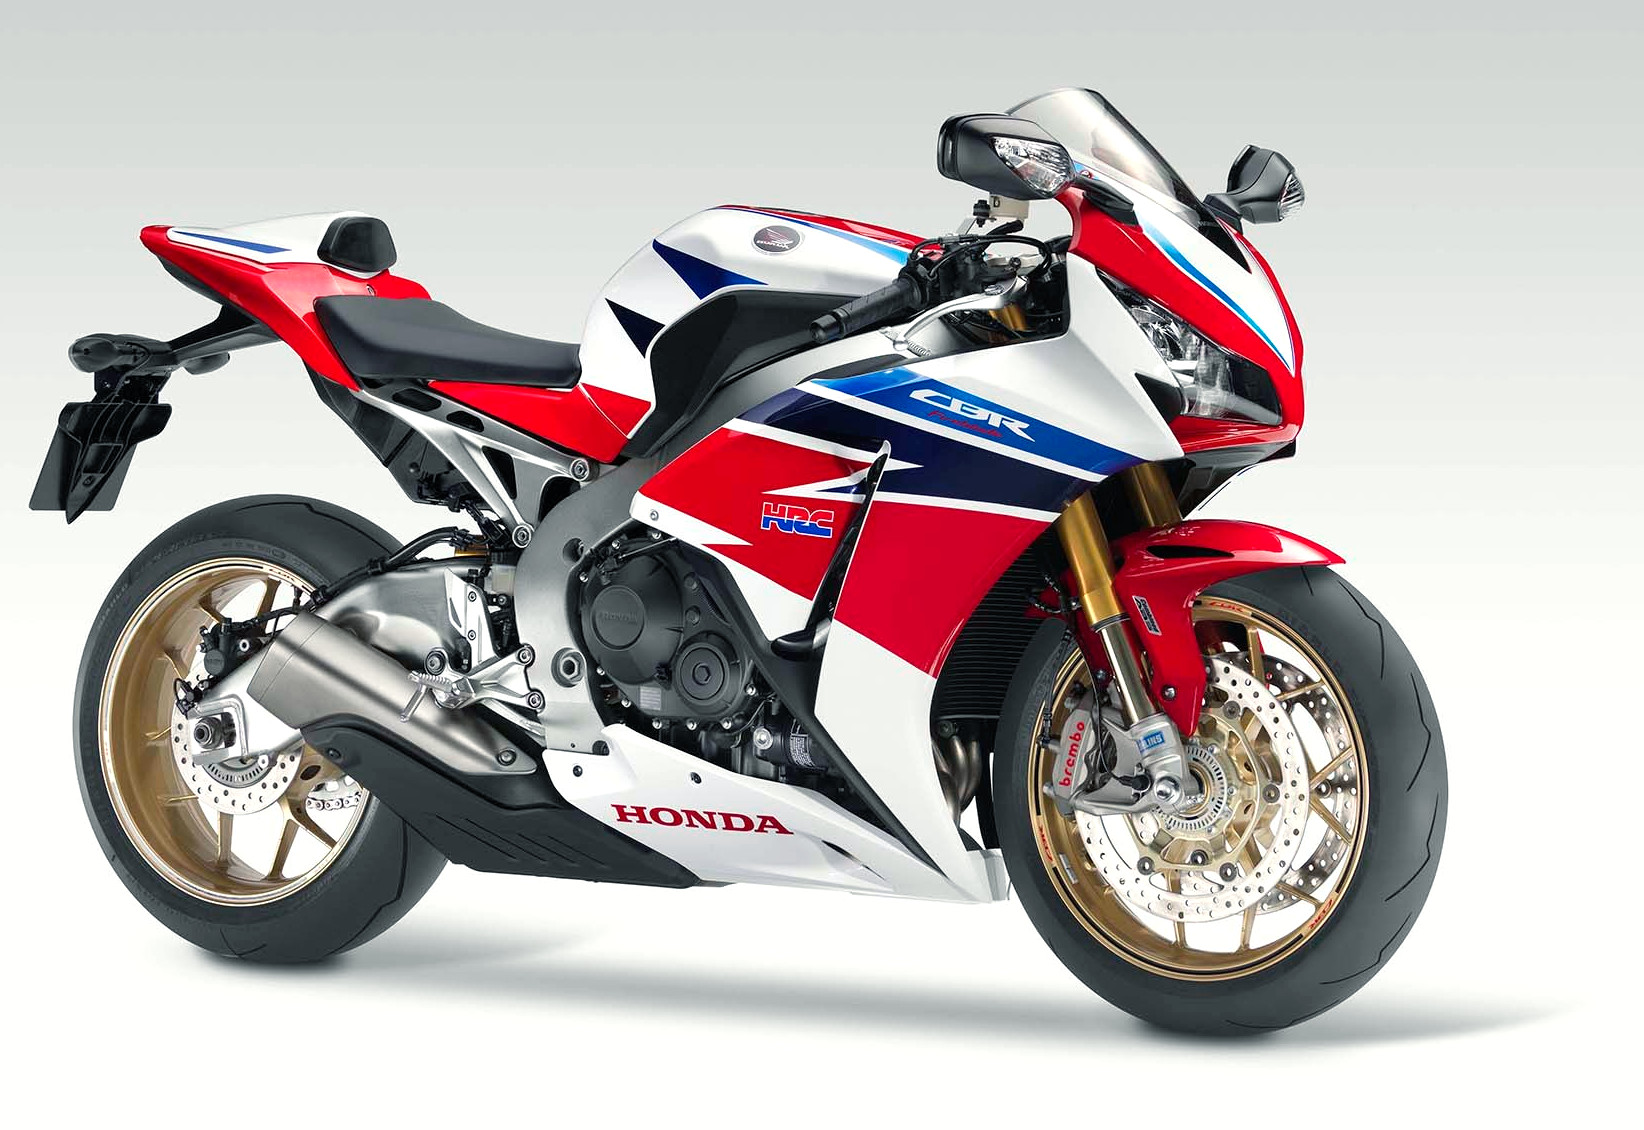 Mcn Claims To Have Inside Scoop On 2017 Honda Cbr1000rr